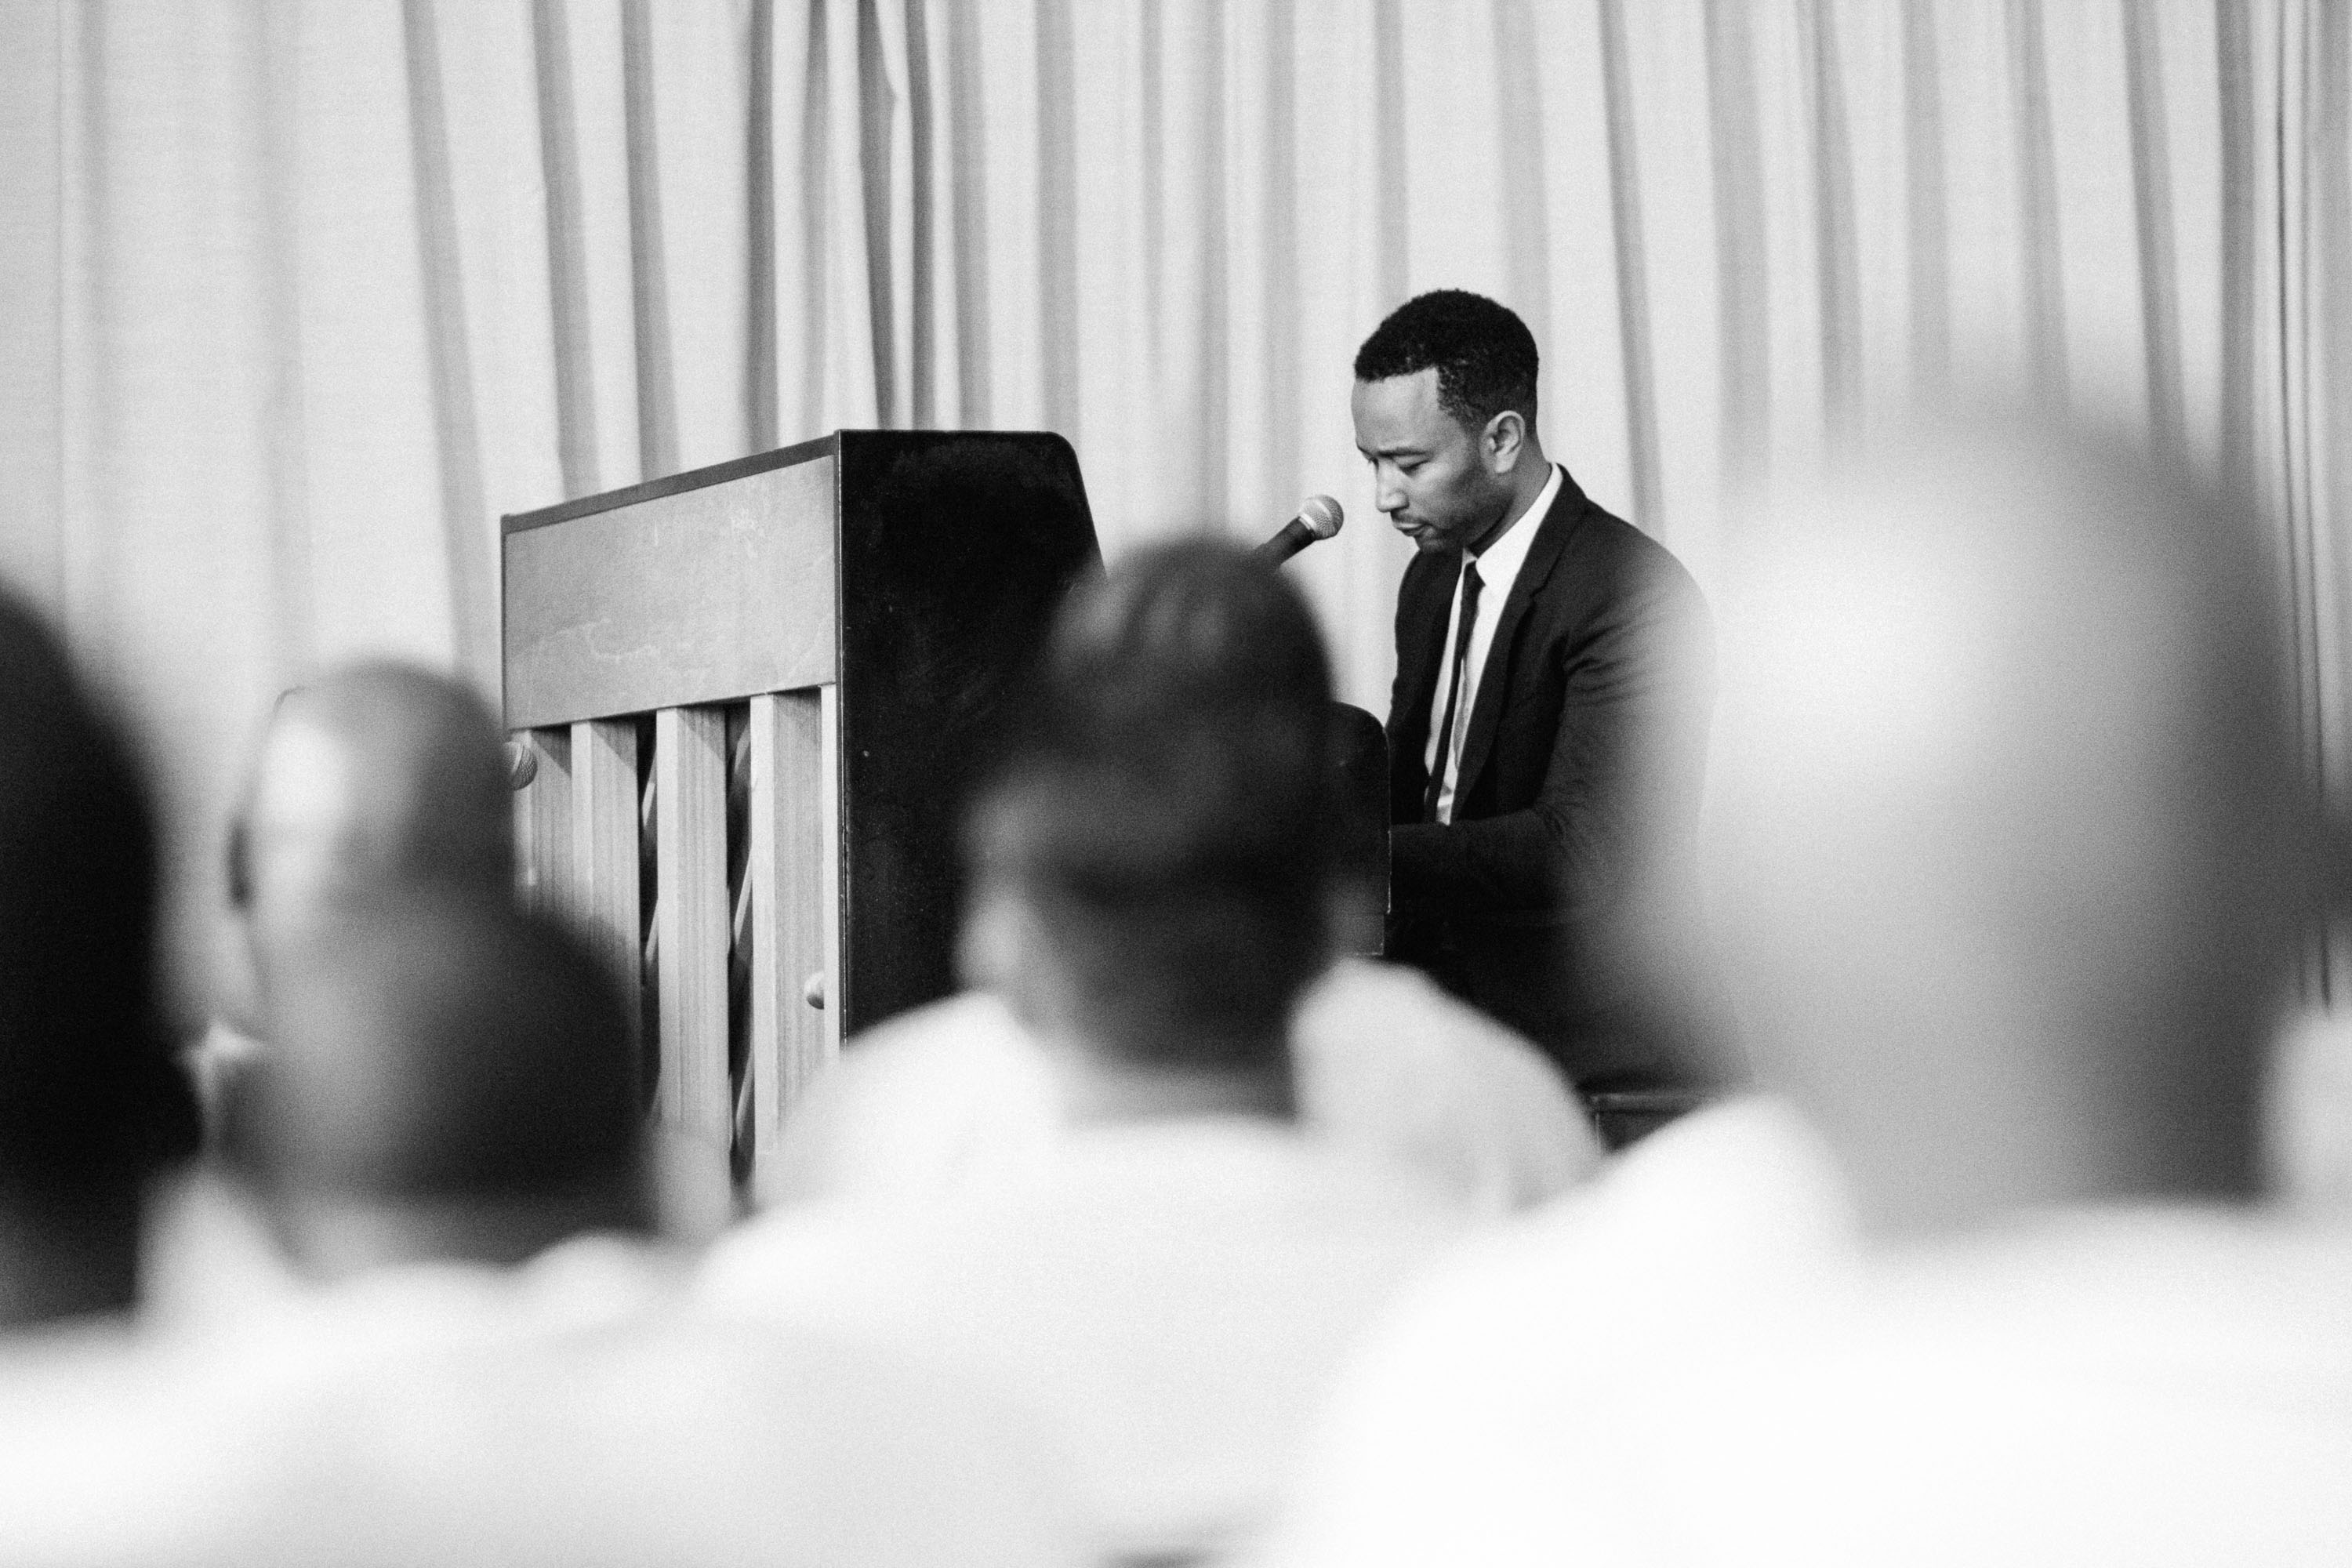 John Legend in the Travis County Correctional Complex in Austin, TX, on April 16, 2015.